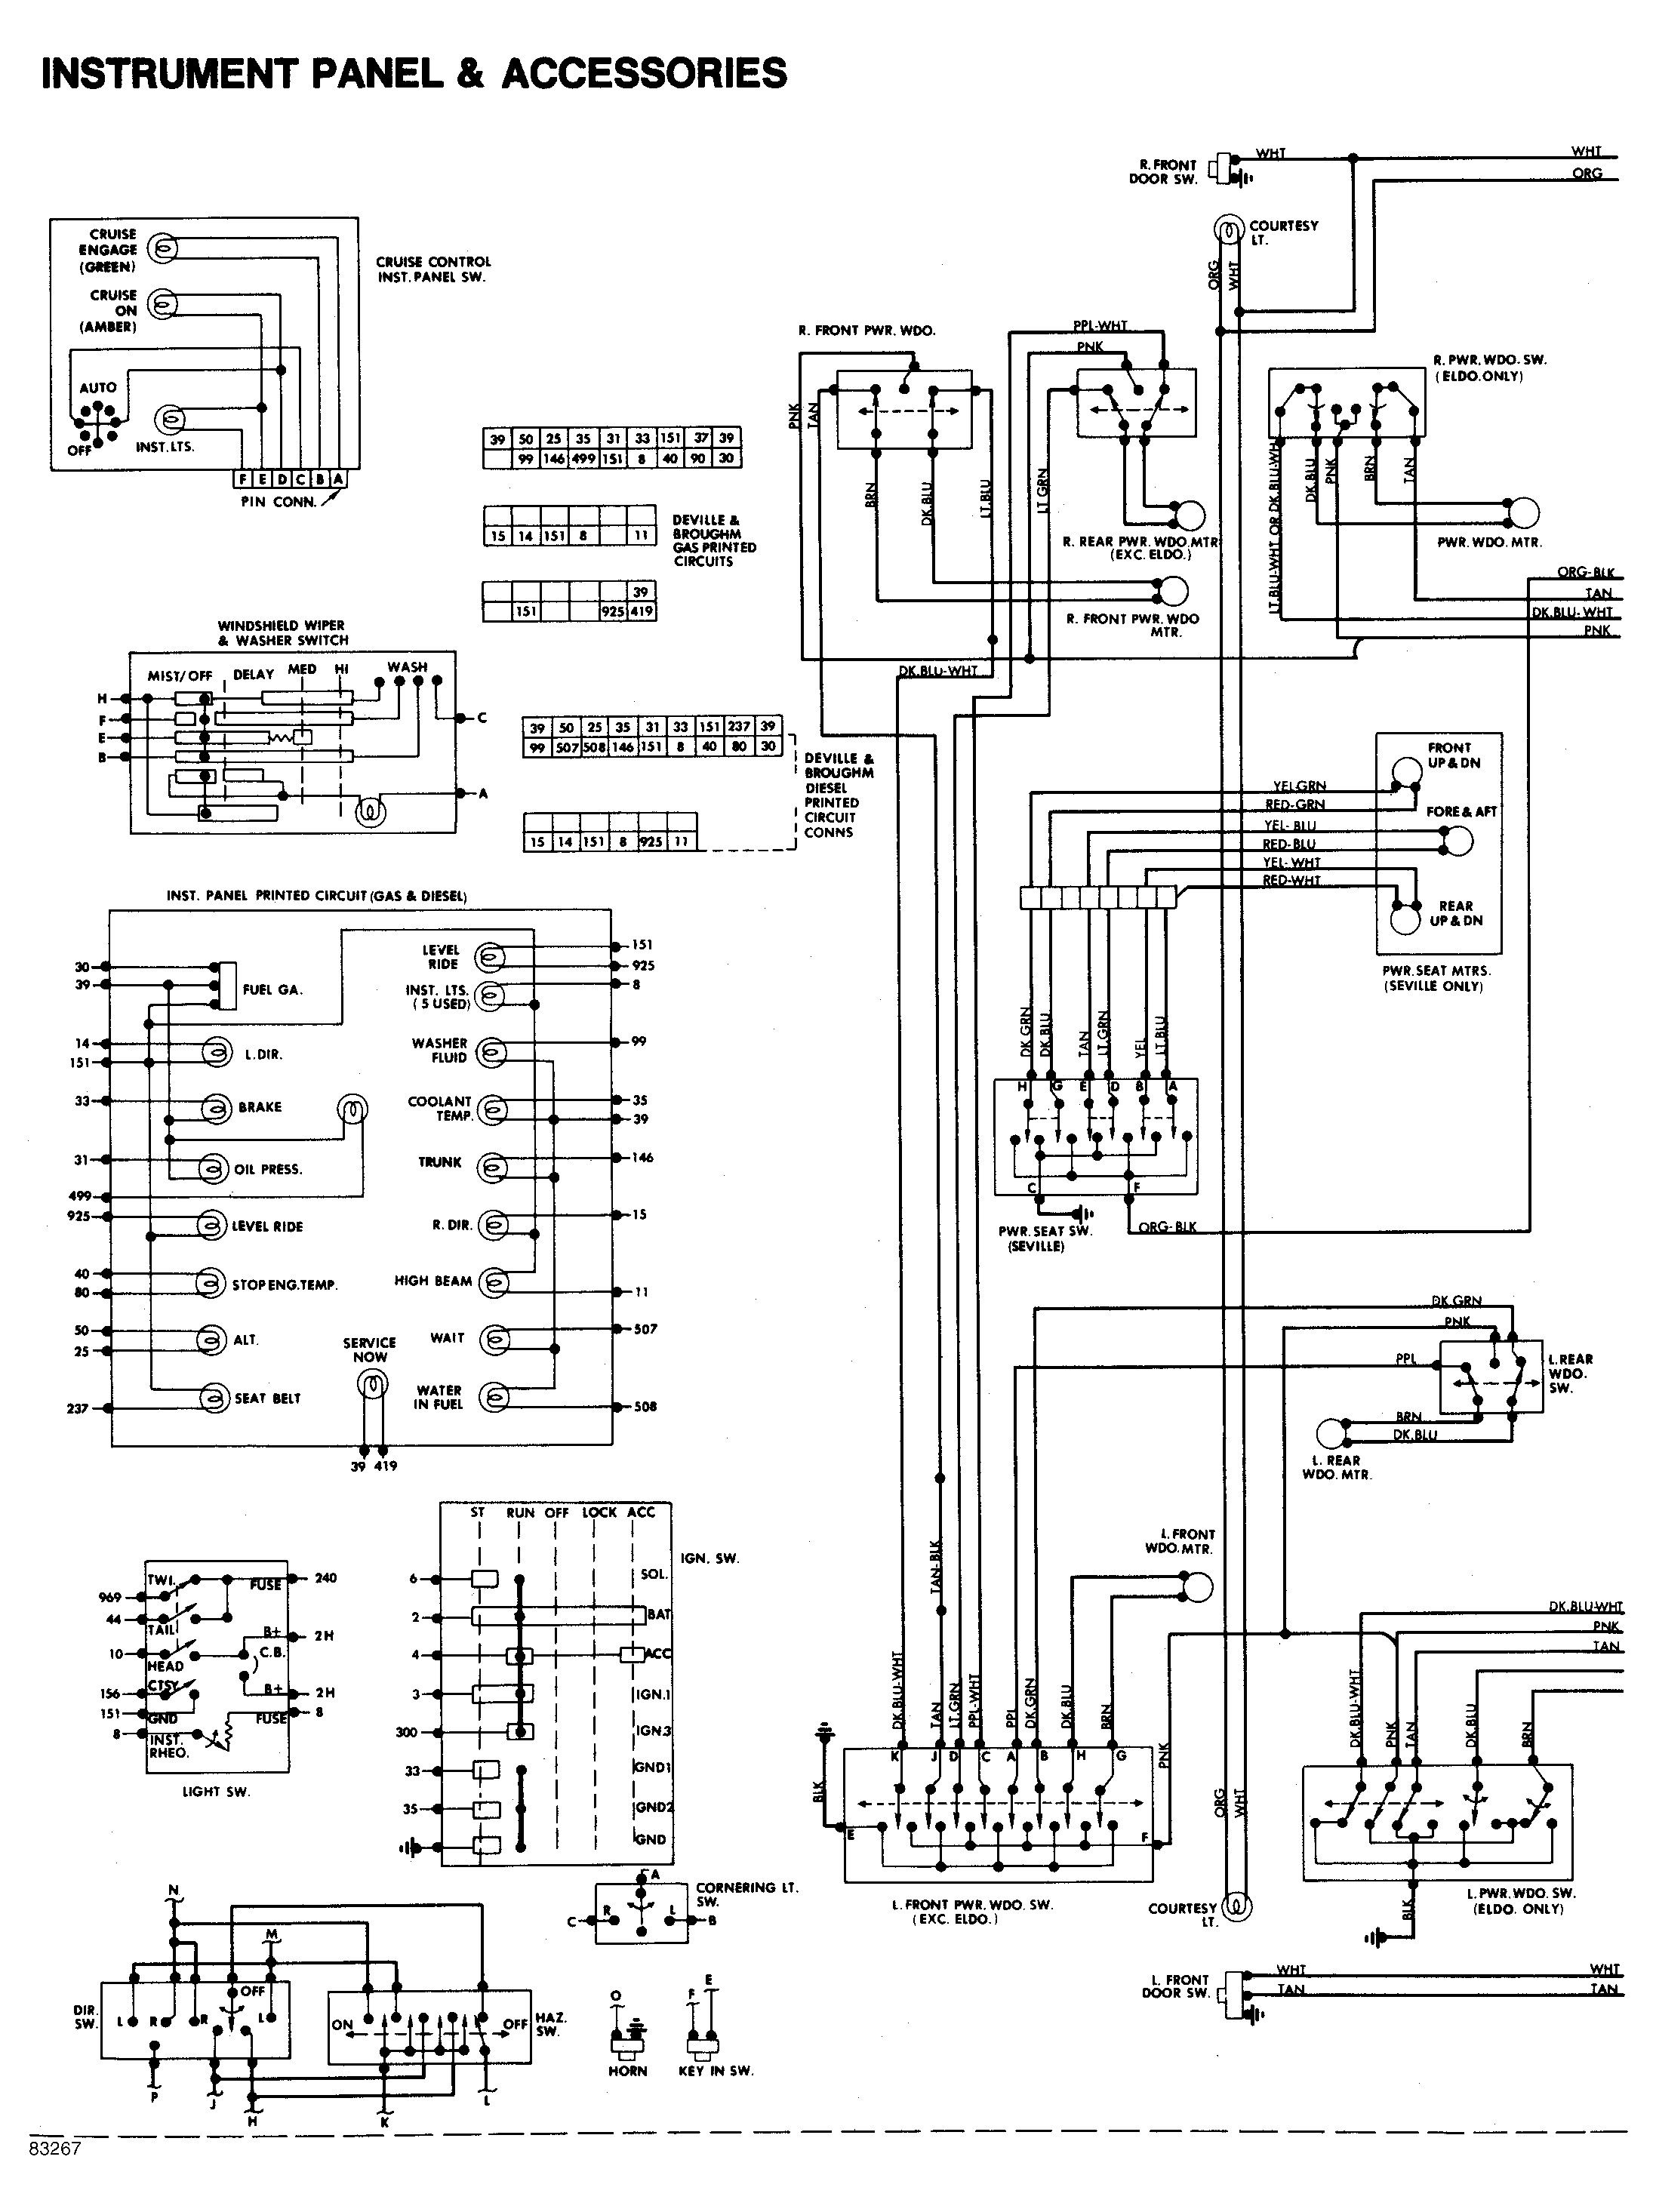 2000 honda accord radio wiring diagram fresh daewoo leganza audio 2007 honda accord wiring diagram 2000 [ 2194 x 2931 Pixel ]